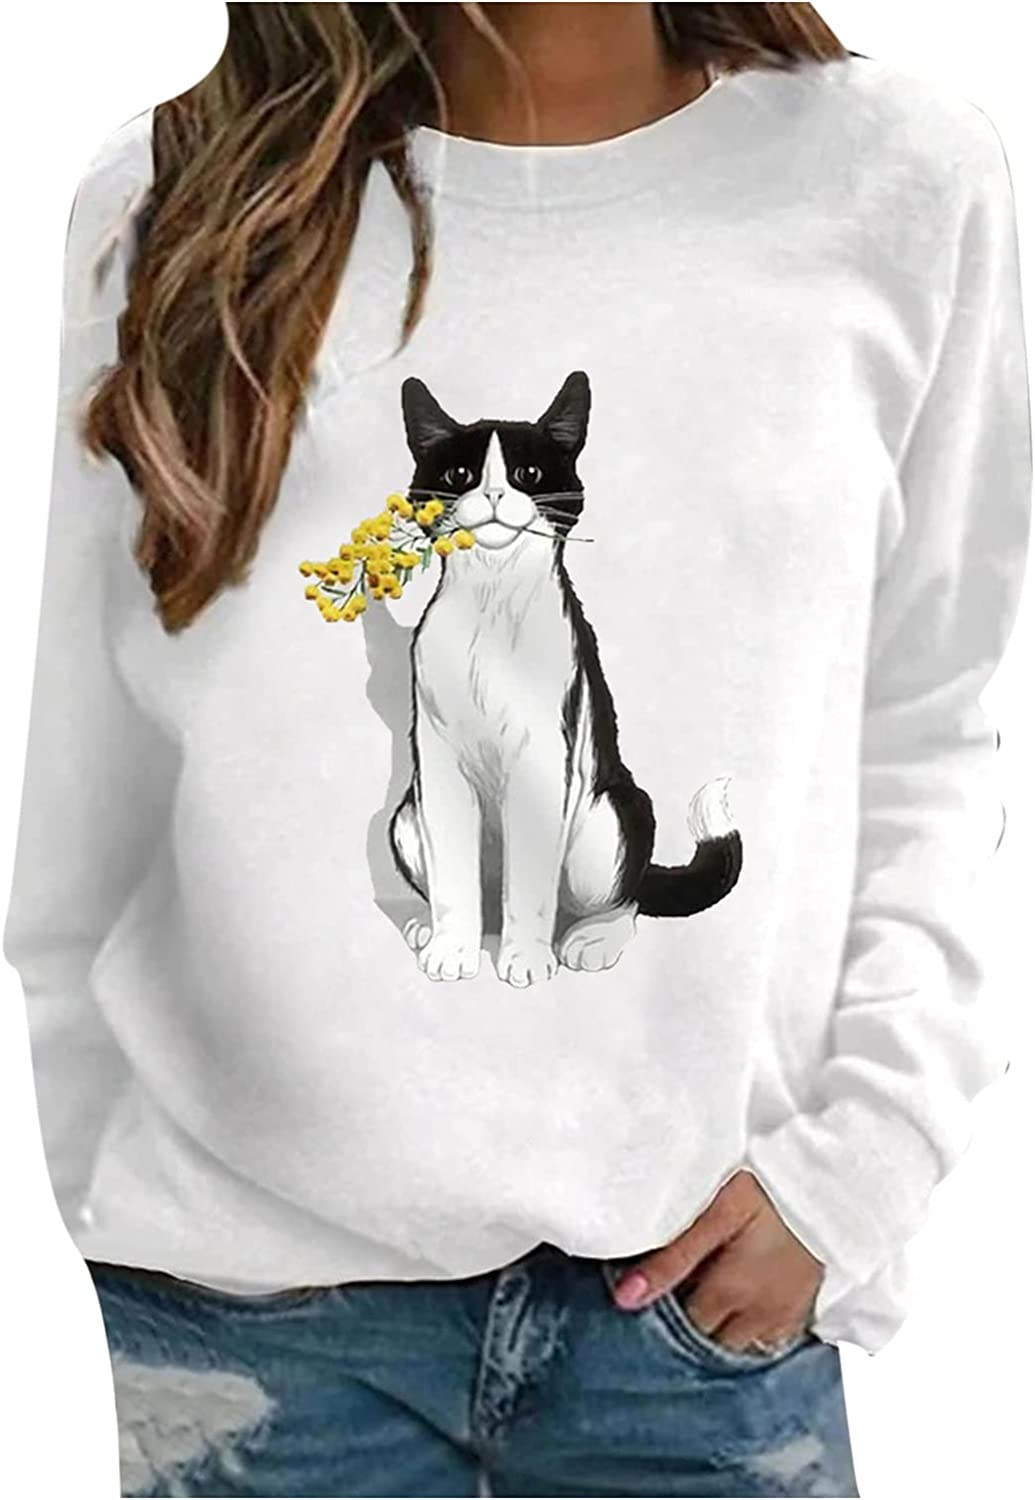 Jchen Women's OFFicial Pullover Sweatshirt Directly managed store Casual Pr Sleeve Cat Long Cute